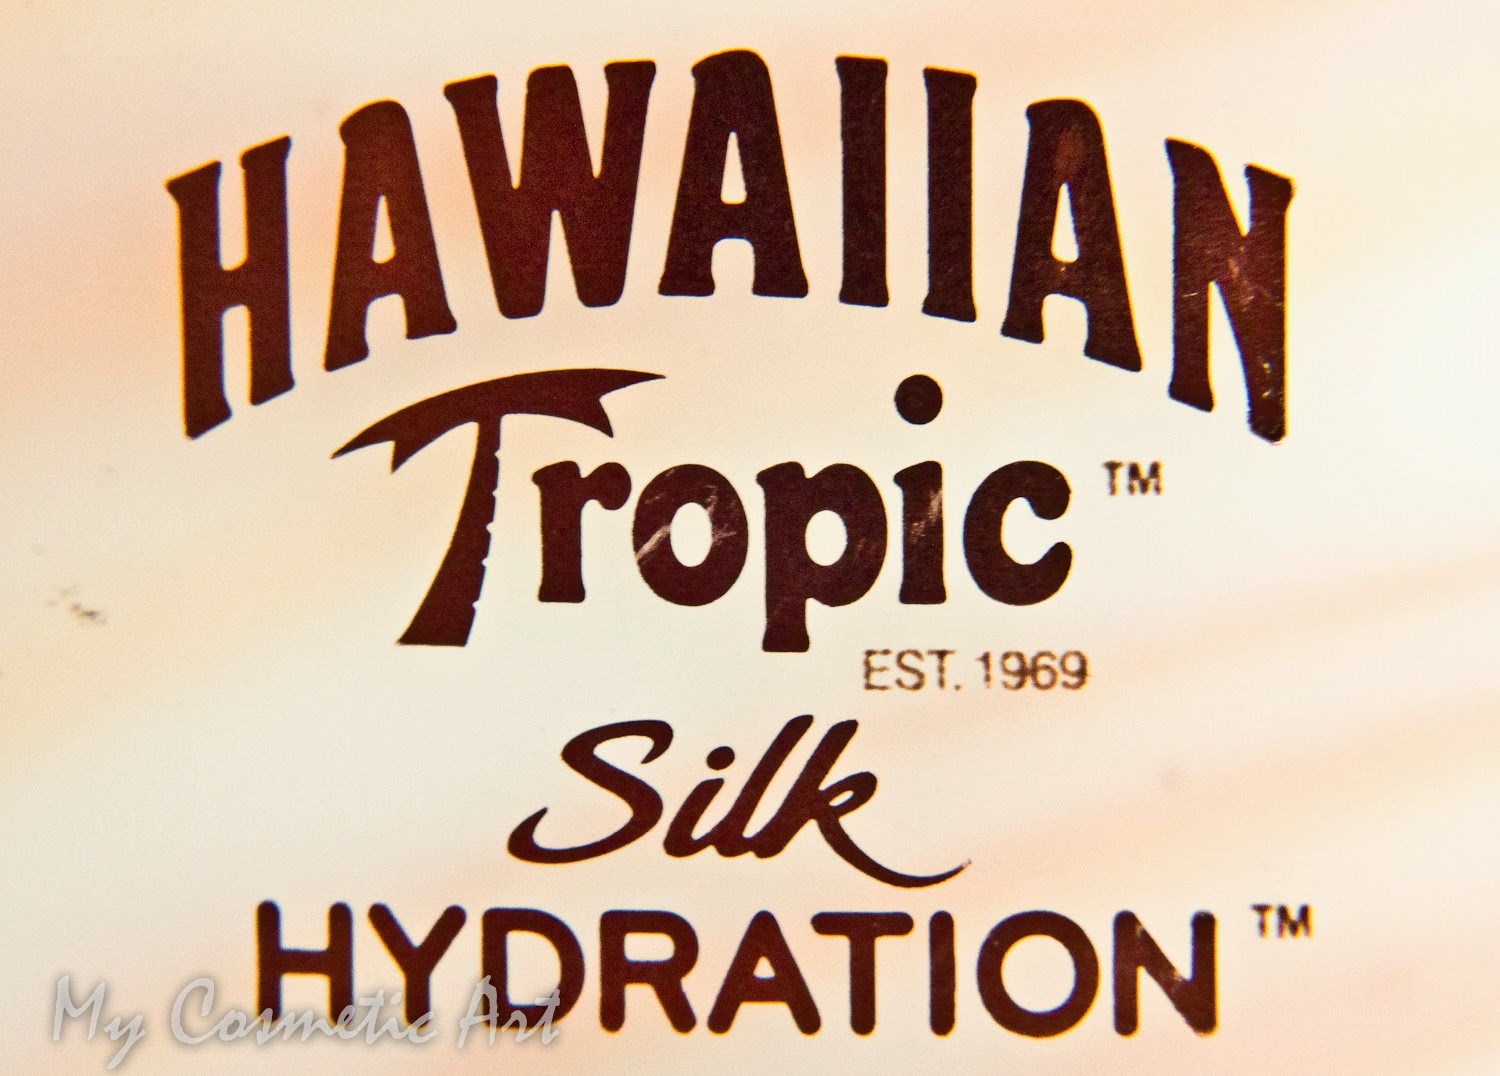 La gama Silk Hydration de Hawaiian Tropic